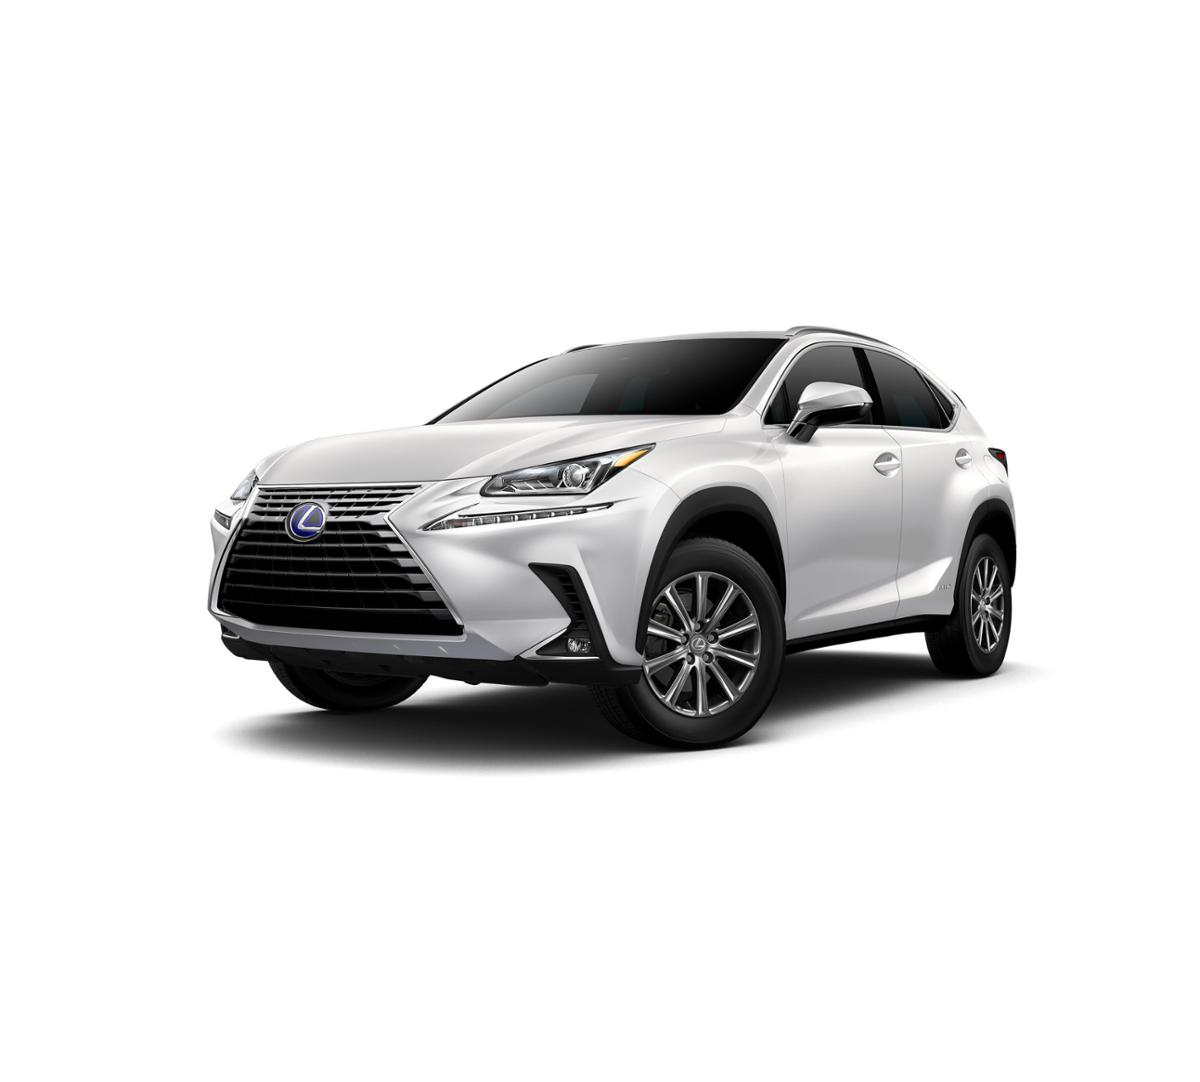 2019 Lexus NX 300h Vehicle Photo in Evansville, IN 47715